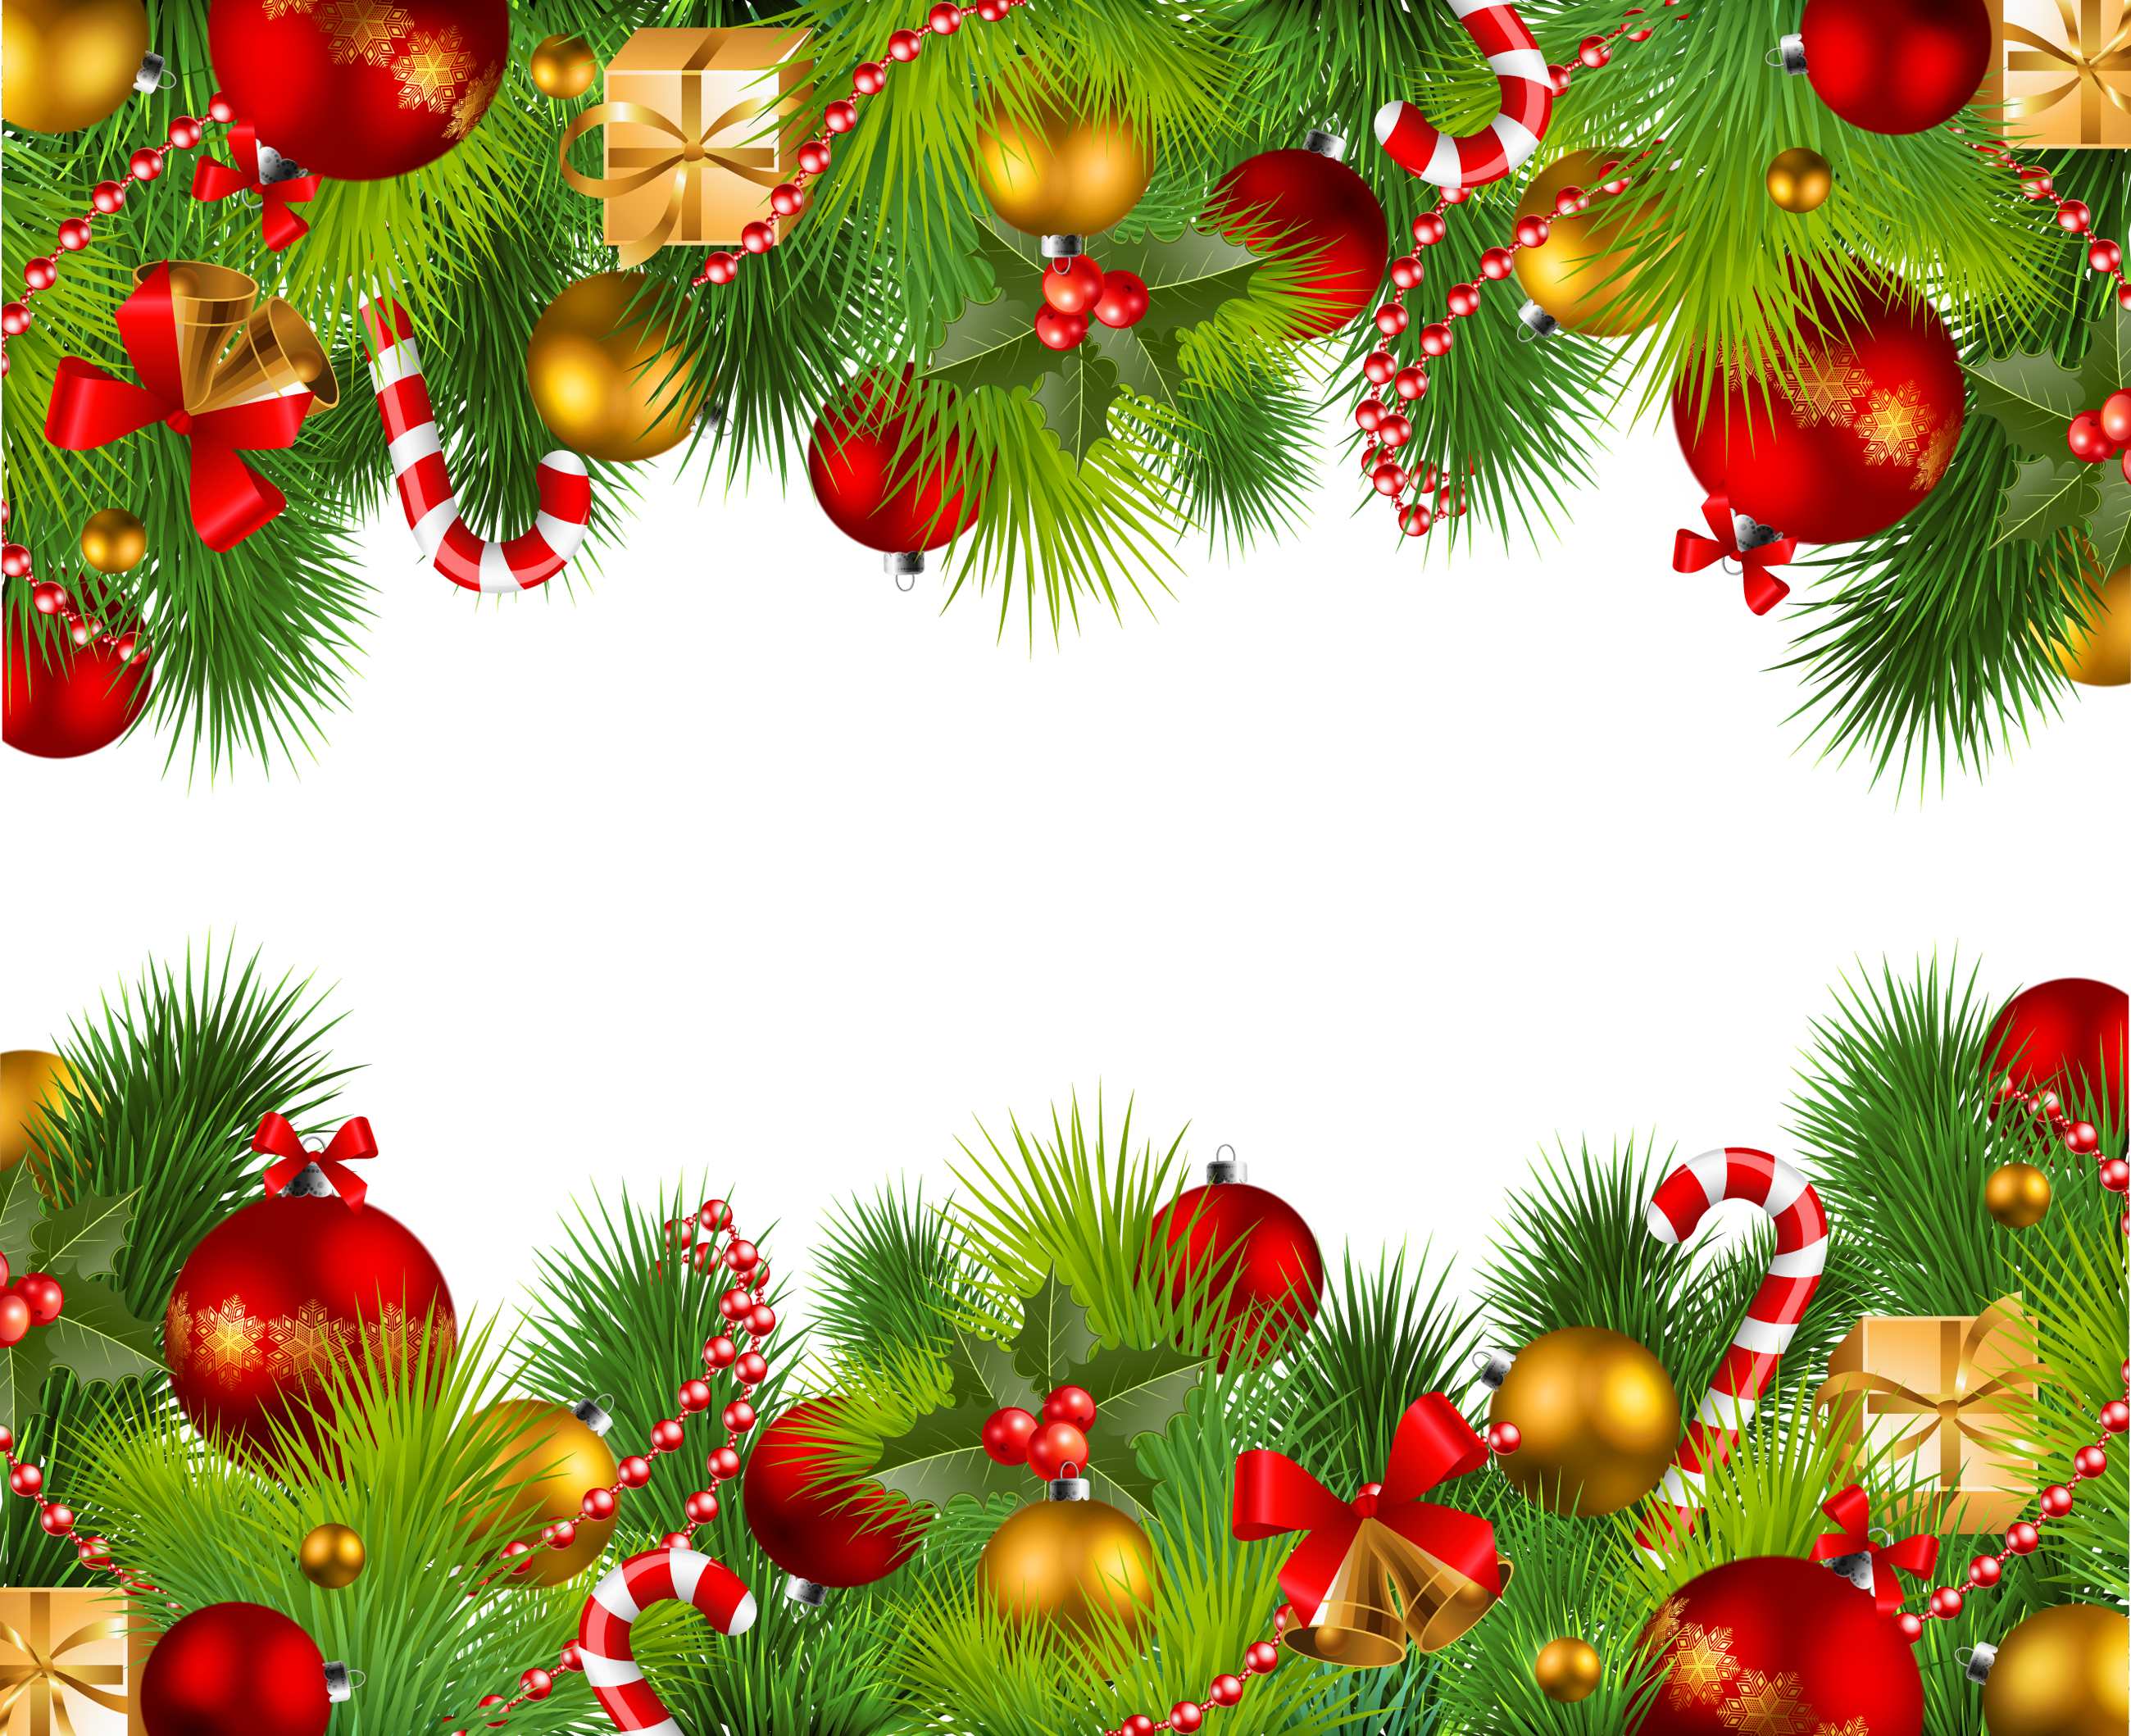 Holiday Decorations, Christmas, Xmas, New Year Png image #35313